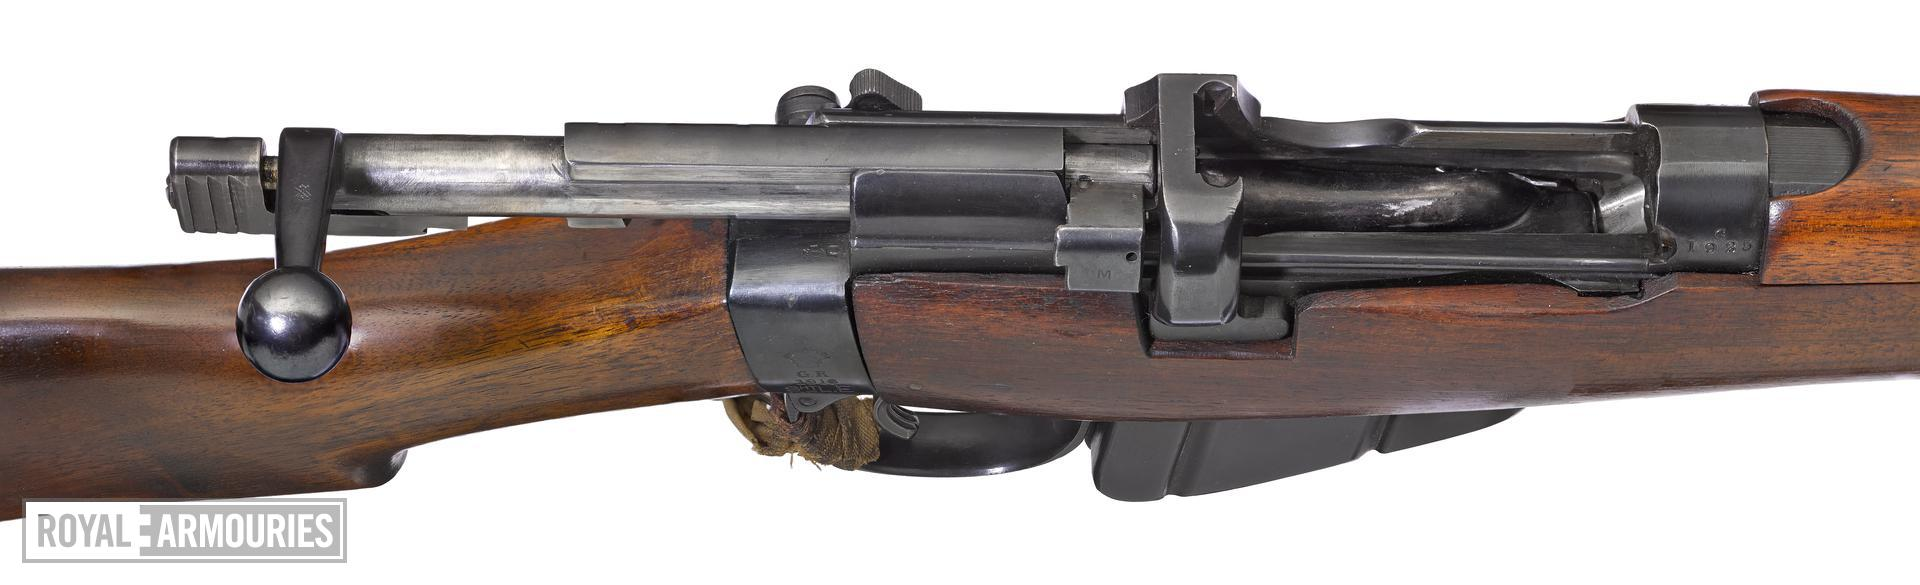 Small Magazine Lee Enfield Mk III* centrefire bolt action rifle (SMLE Mk III), with sealed pattern, Enfield, Britain, about 1907